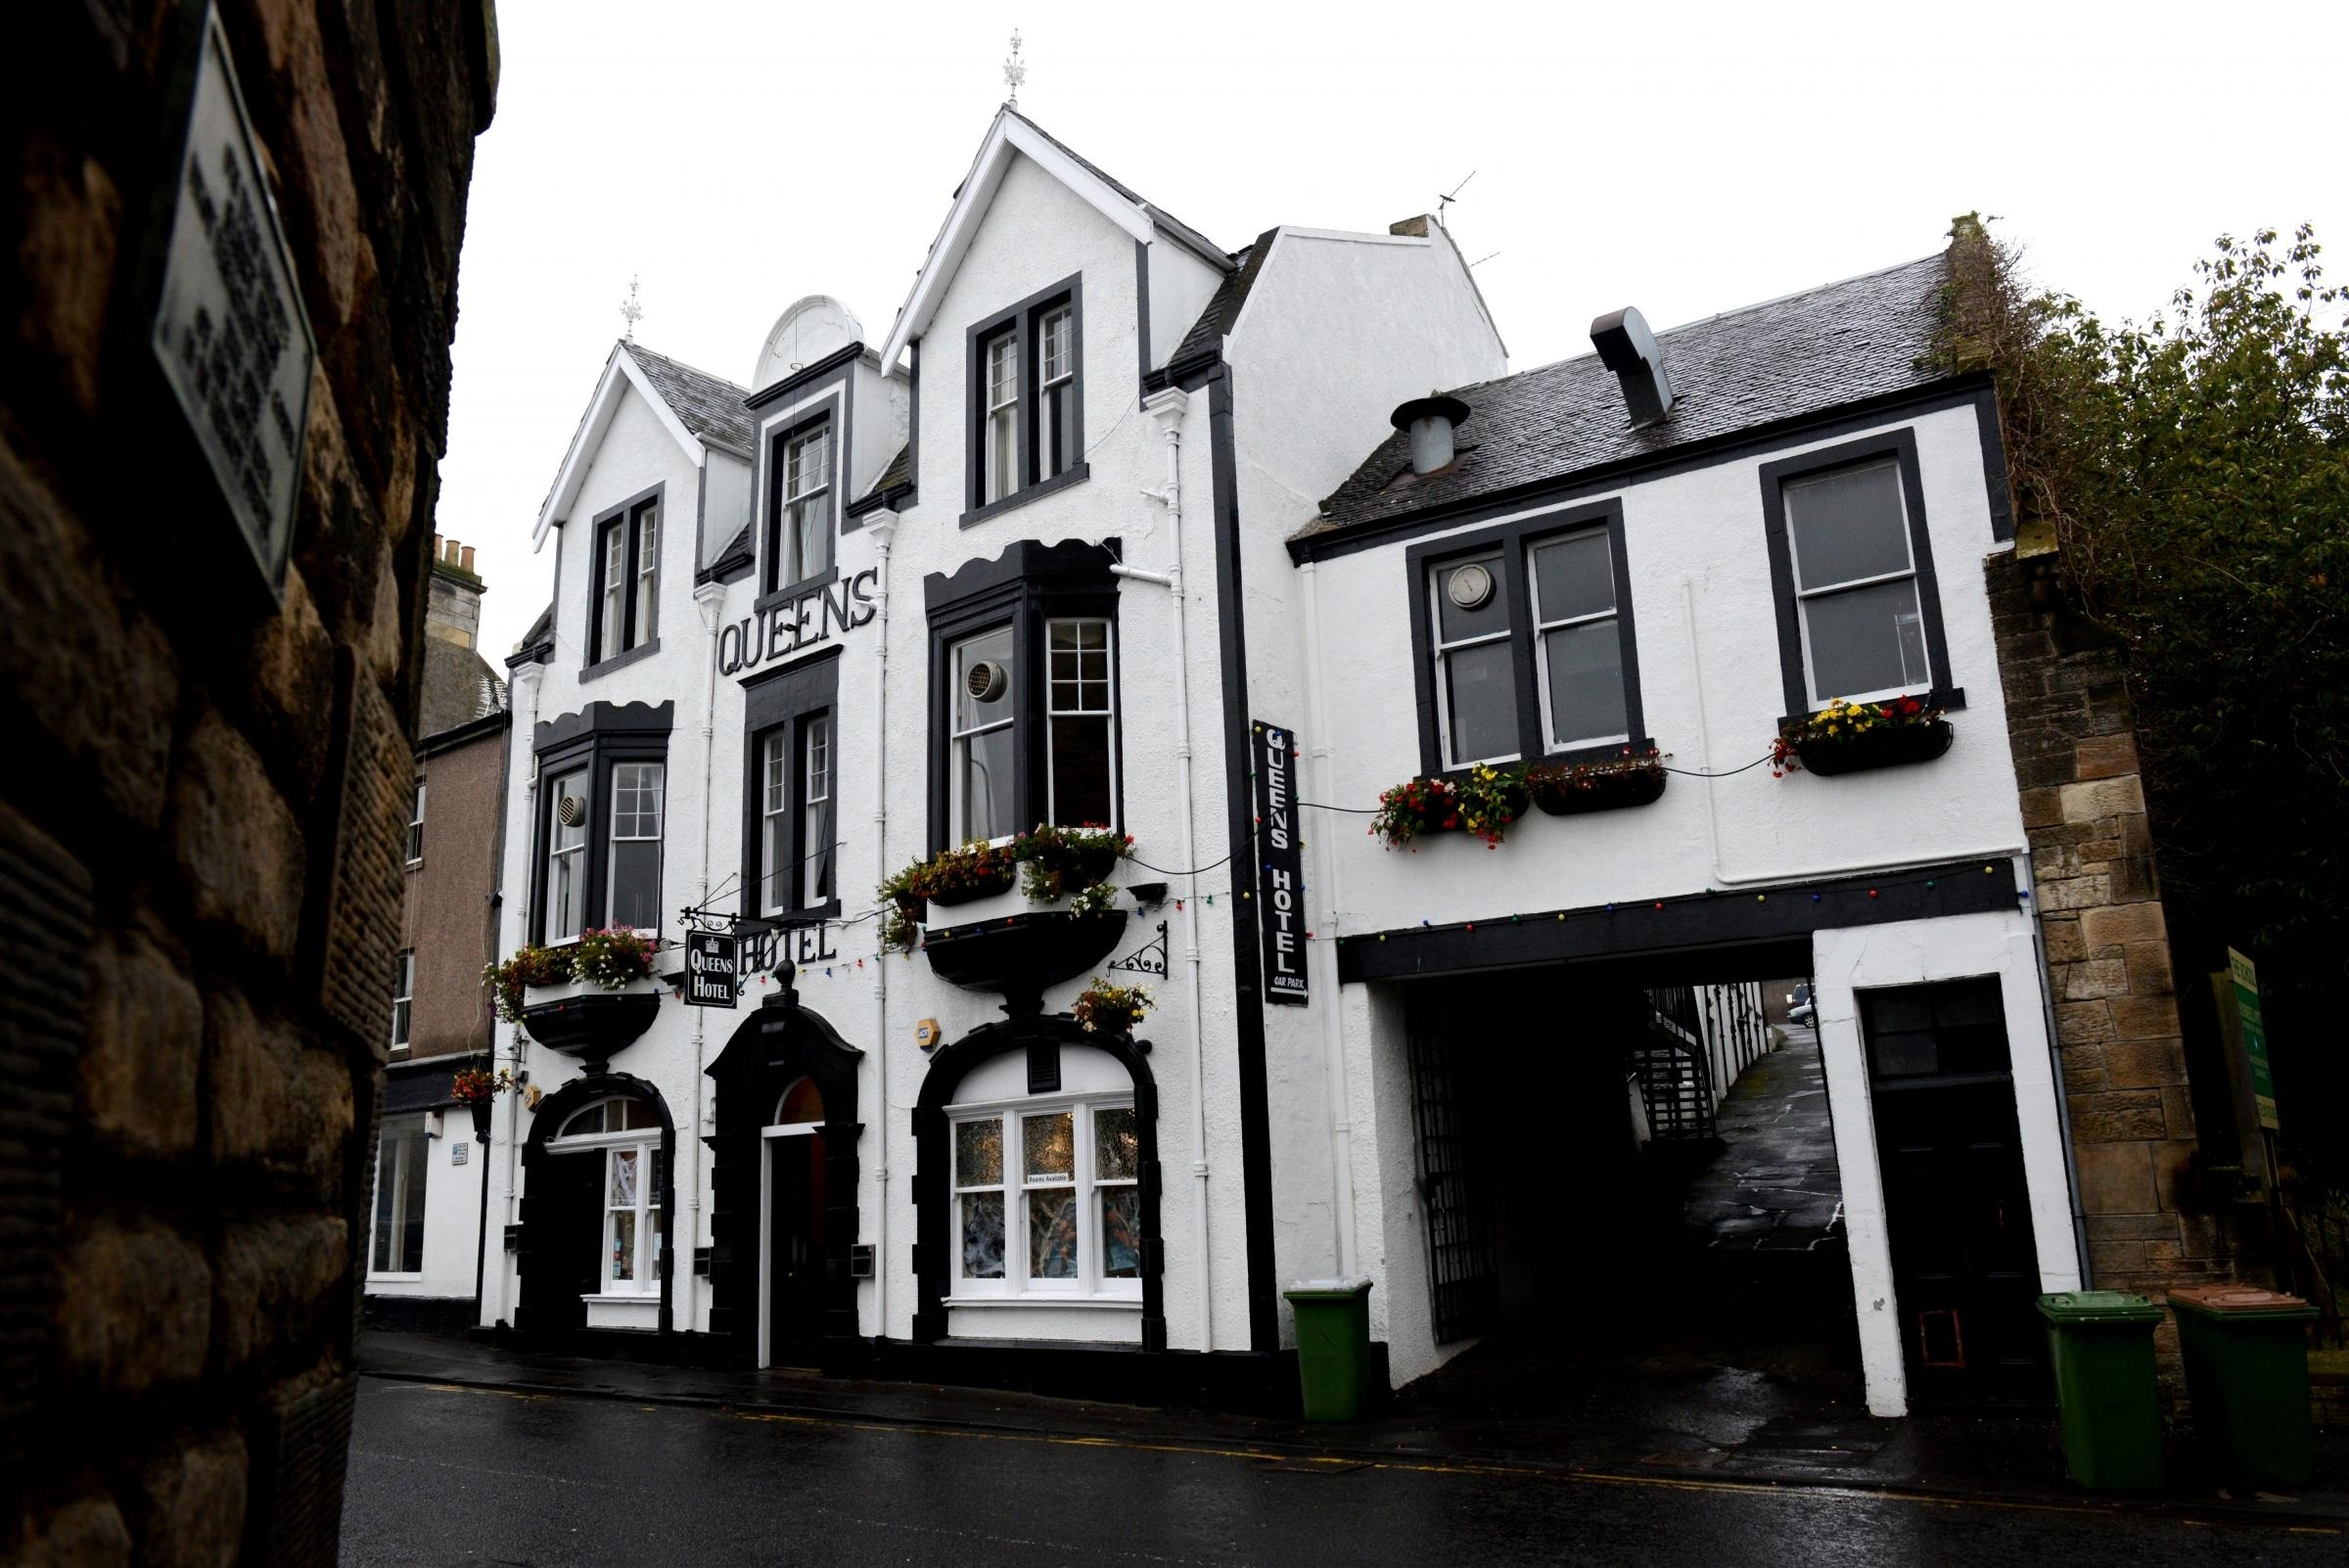 The iconic Queens Hotel in Inverkeithing.